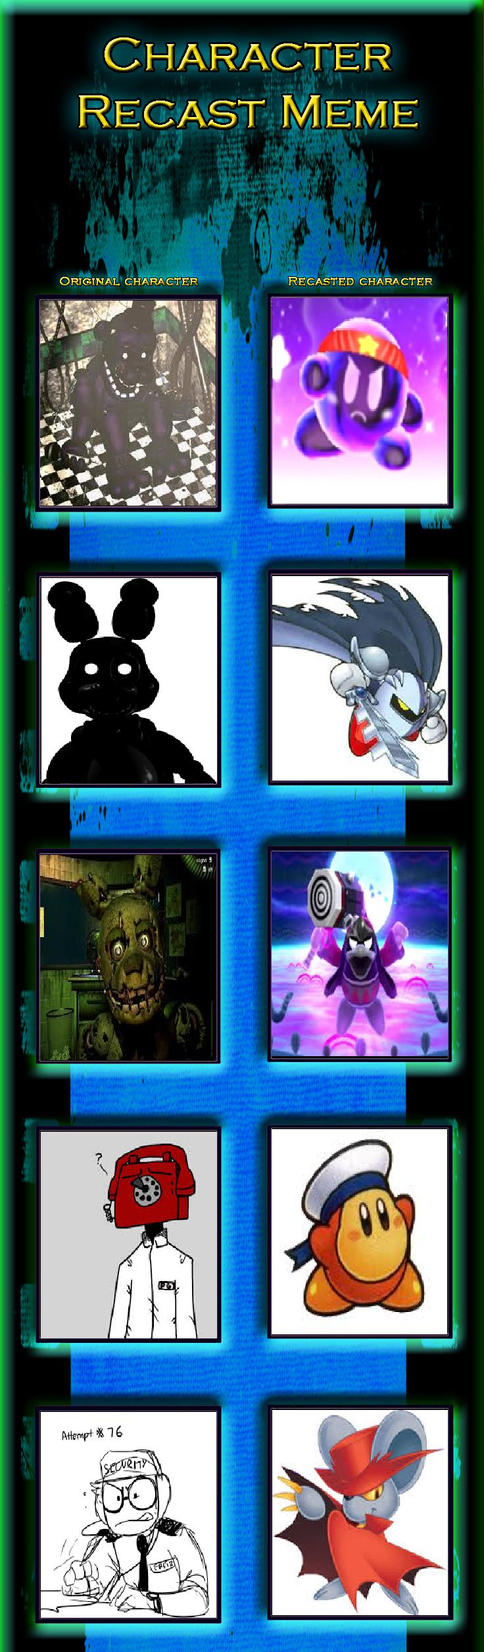 Five Nights At Kirby's Character Recast Meme 3 by magolorandmarx